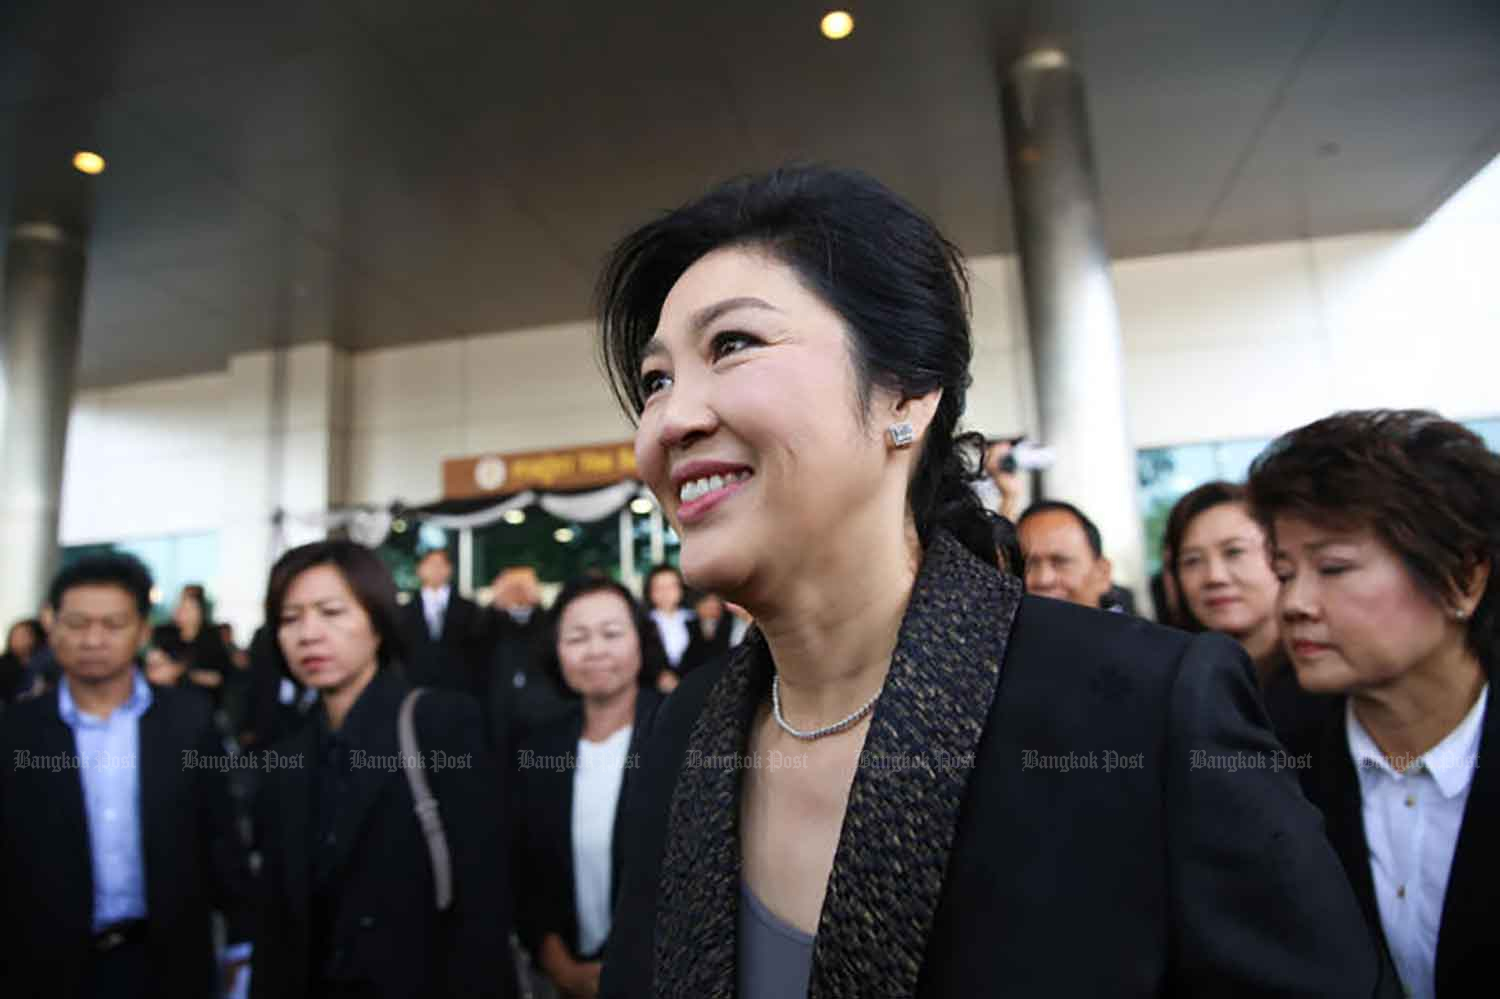 Former prime minister Yingluck Shinawatra appears at the Supreme Court's Criminal Division for People Holding Political Positions in Bangkok on Aug 1, 2017, to deliver her closing statement in the case involving her administration's corruption-ridden rice-pledging scheme. She fled the country later in the same month. (File photo)